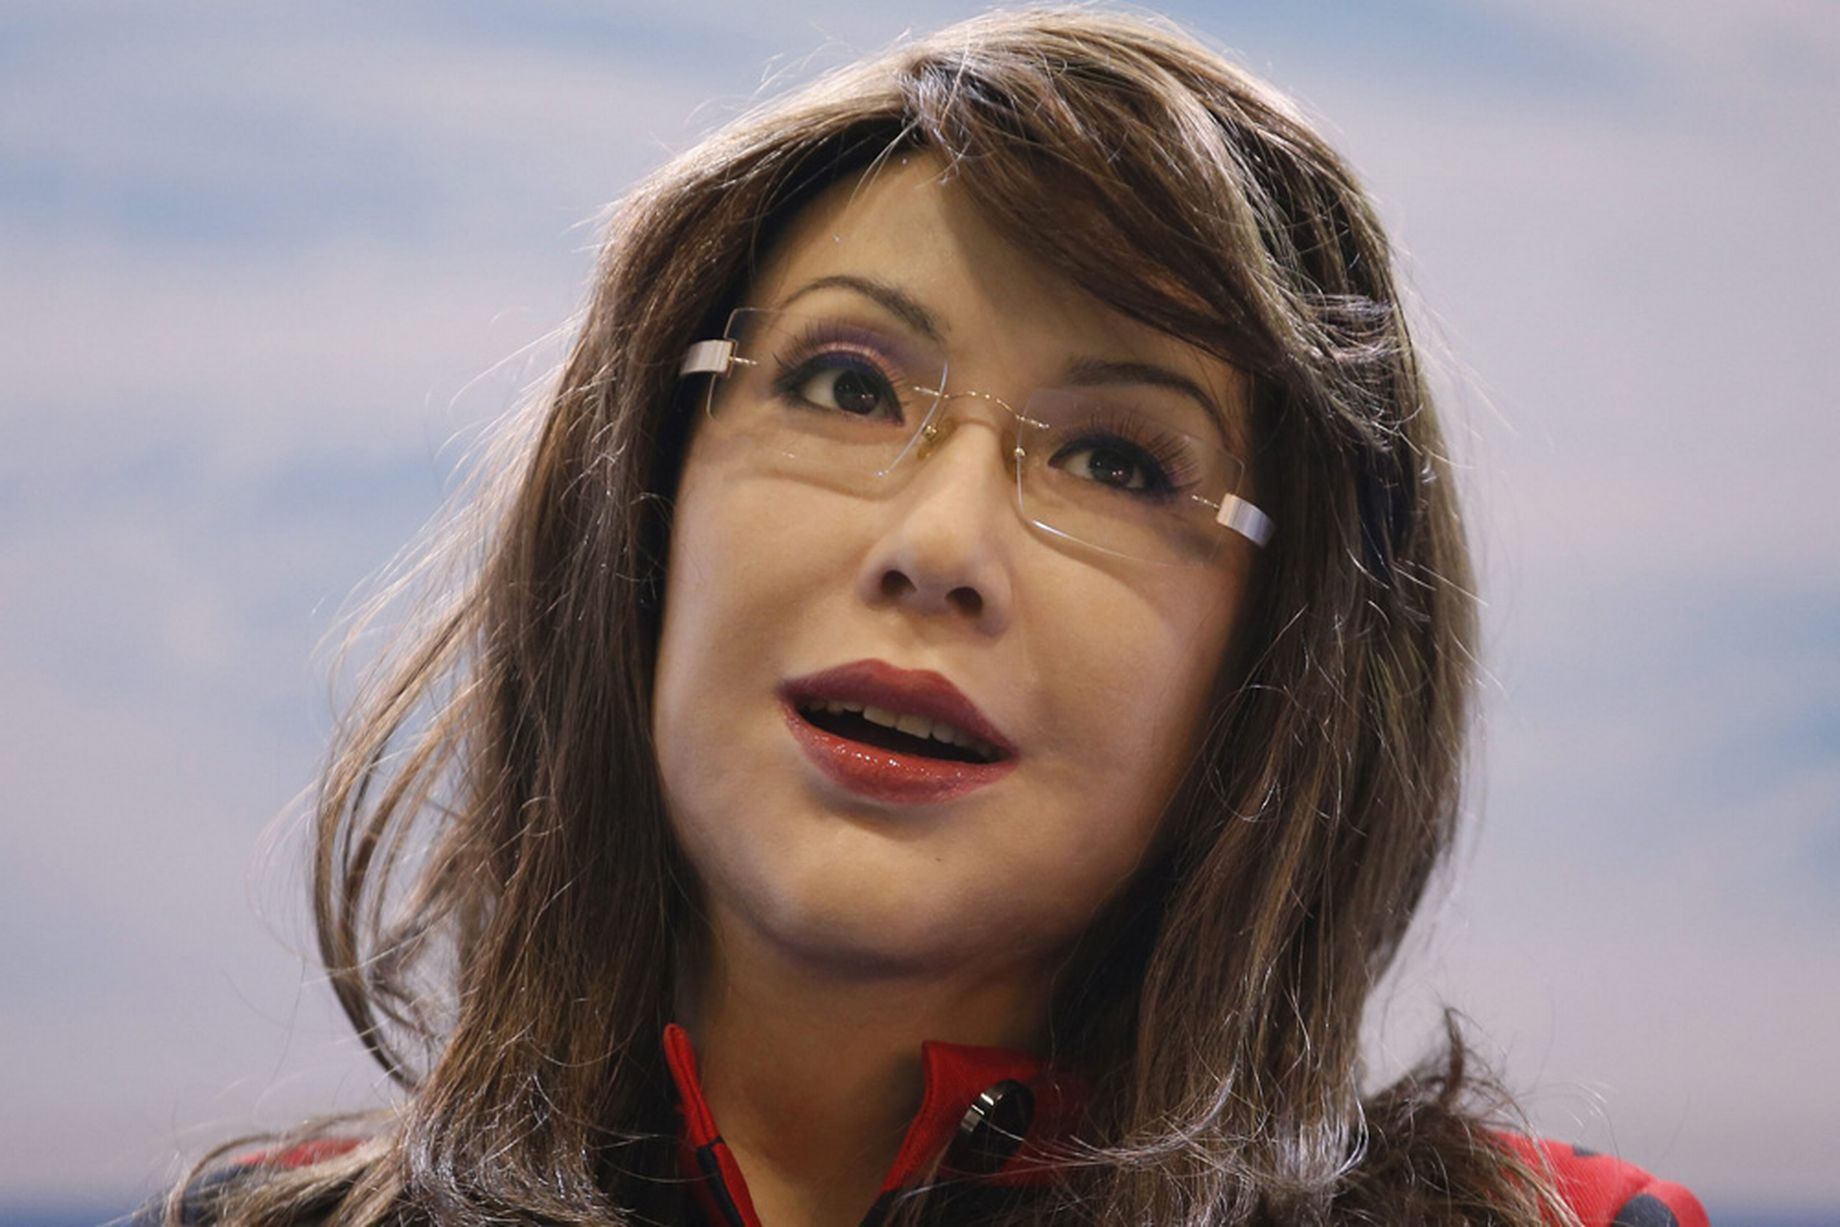 Humanoid Robot Looks, Moves Like A Real Woman (VIDEO)